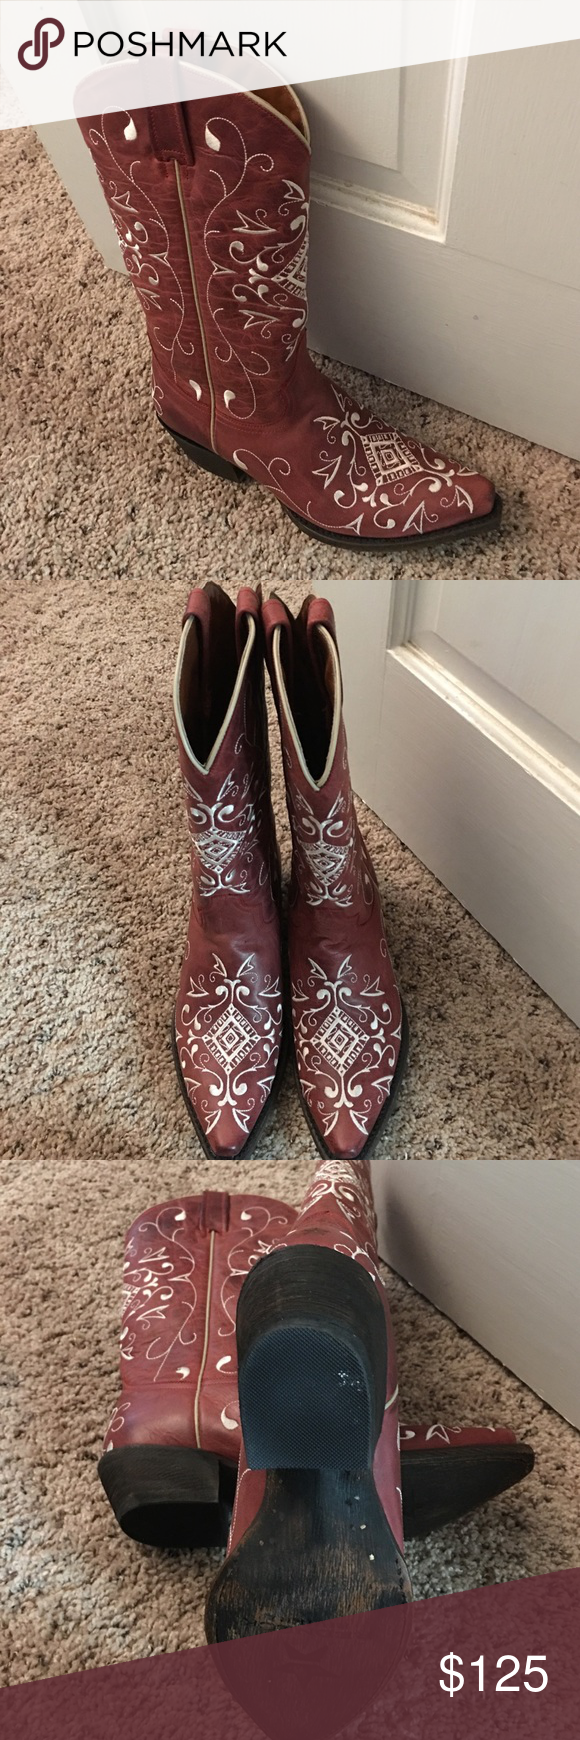 Redneck Riviera Dreamweaver Cowboy Boots Brand new, gorgeous crimson colored boots with cream colored embroidery. These boots are all leather and were an impulse buy! I have too many pairs of boots! I do not have the original box but I can ship them in a boot box if you like. Size 7, and true to size. These are on Country Outfitters website right now for $215. Redneck Riviera Shoes Heeled Boots